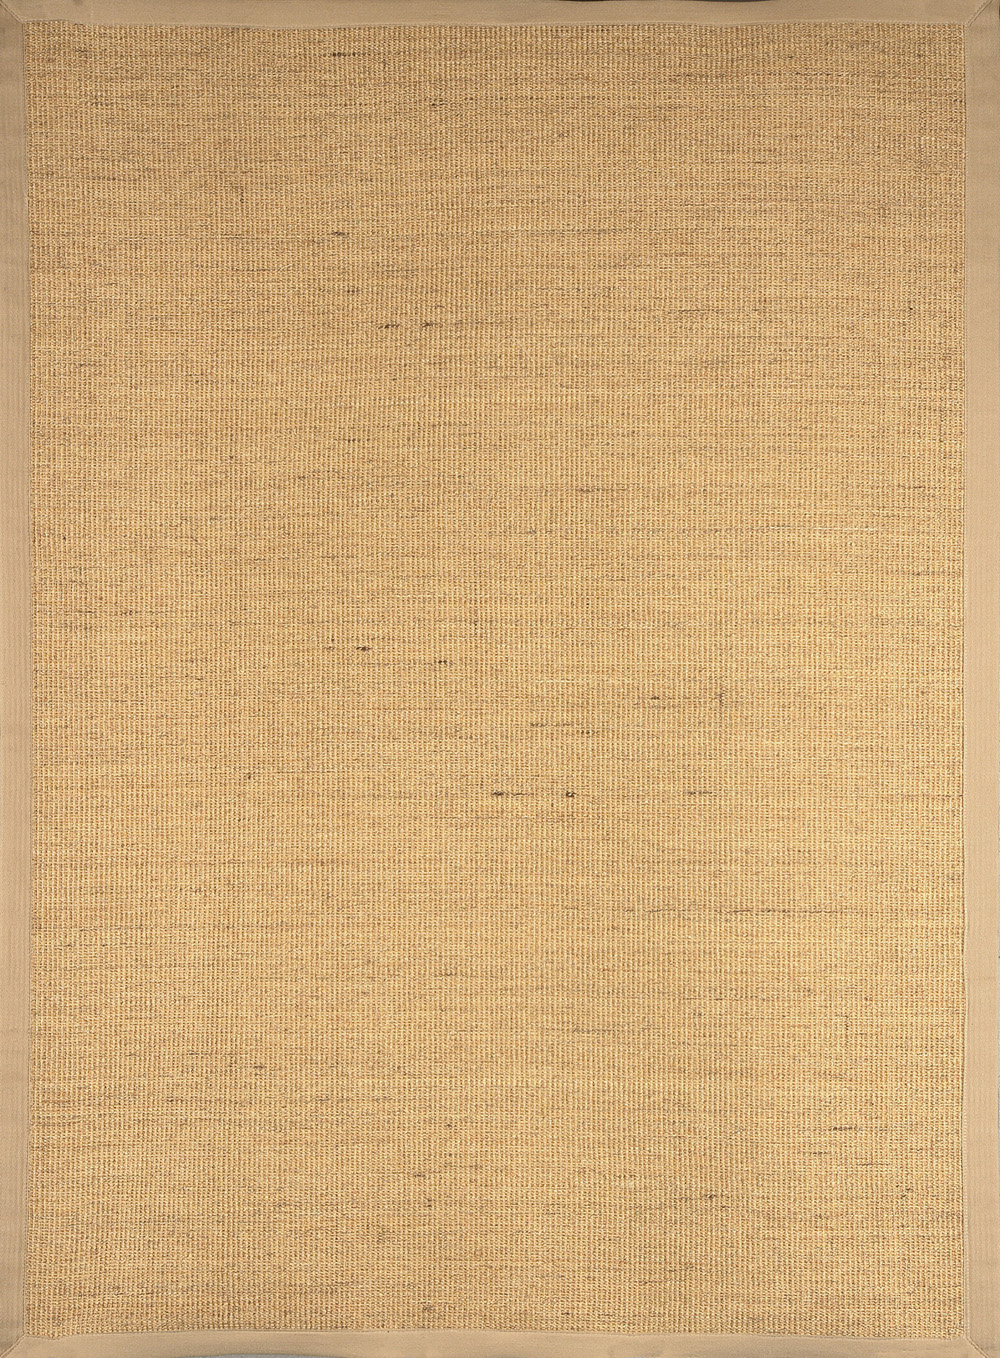 Sisal Rugs 100 Natural Fiber Seagrass Area Rug